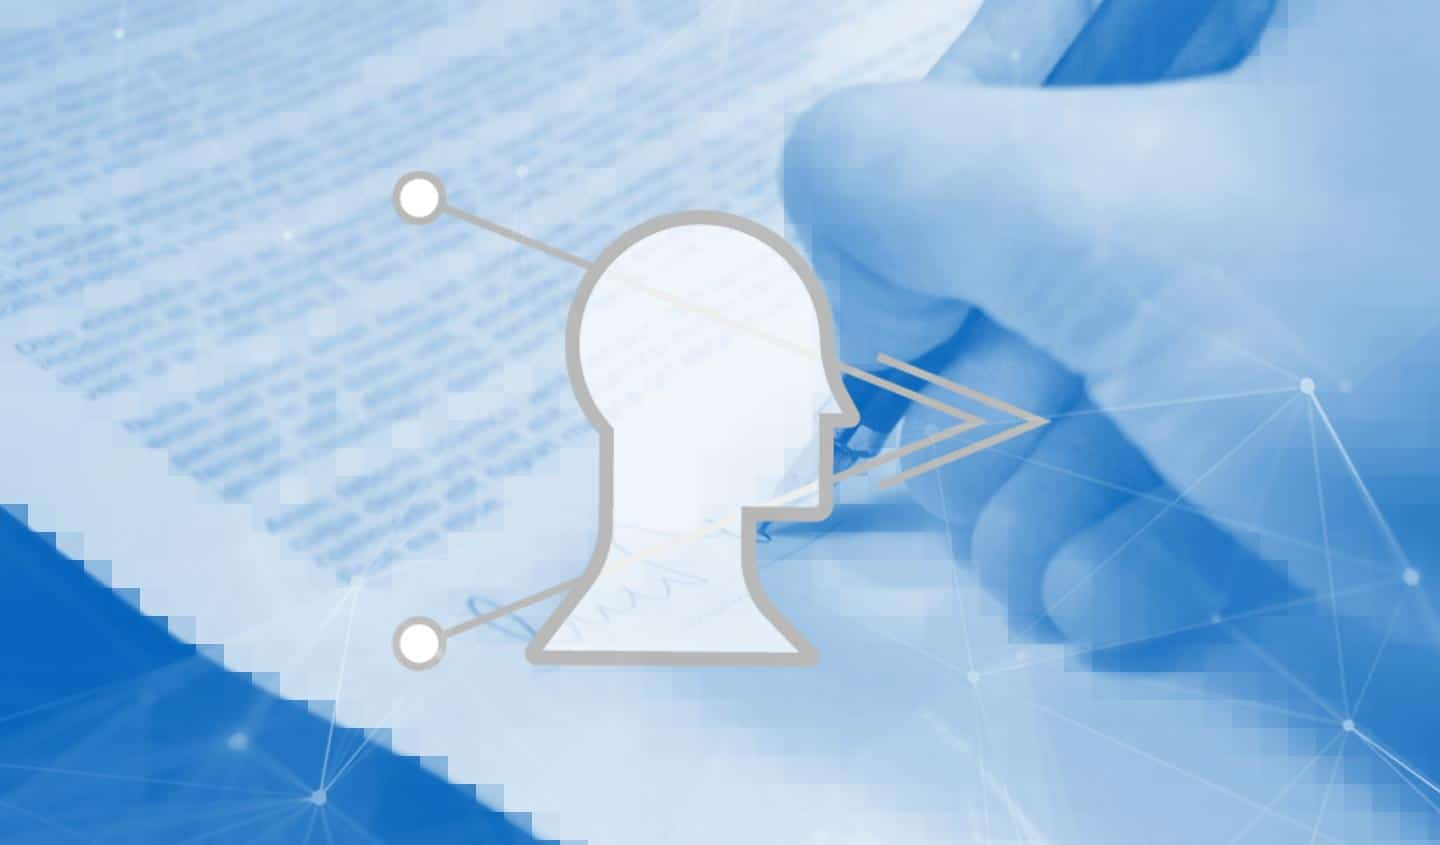 IdentityMind Awarded New Patent For Digital Identity-Based Automated Policy Review